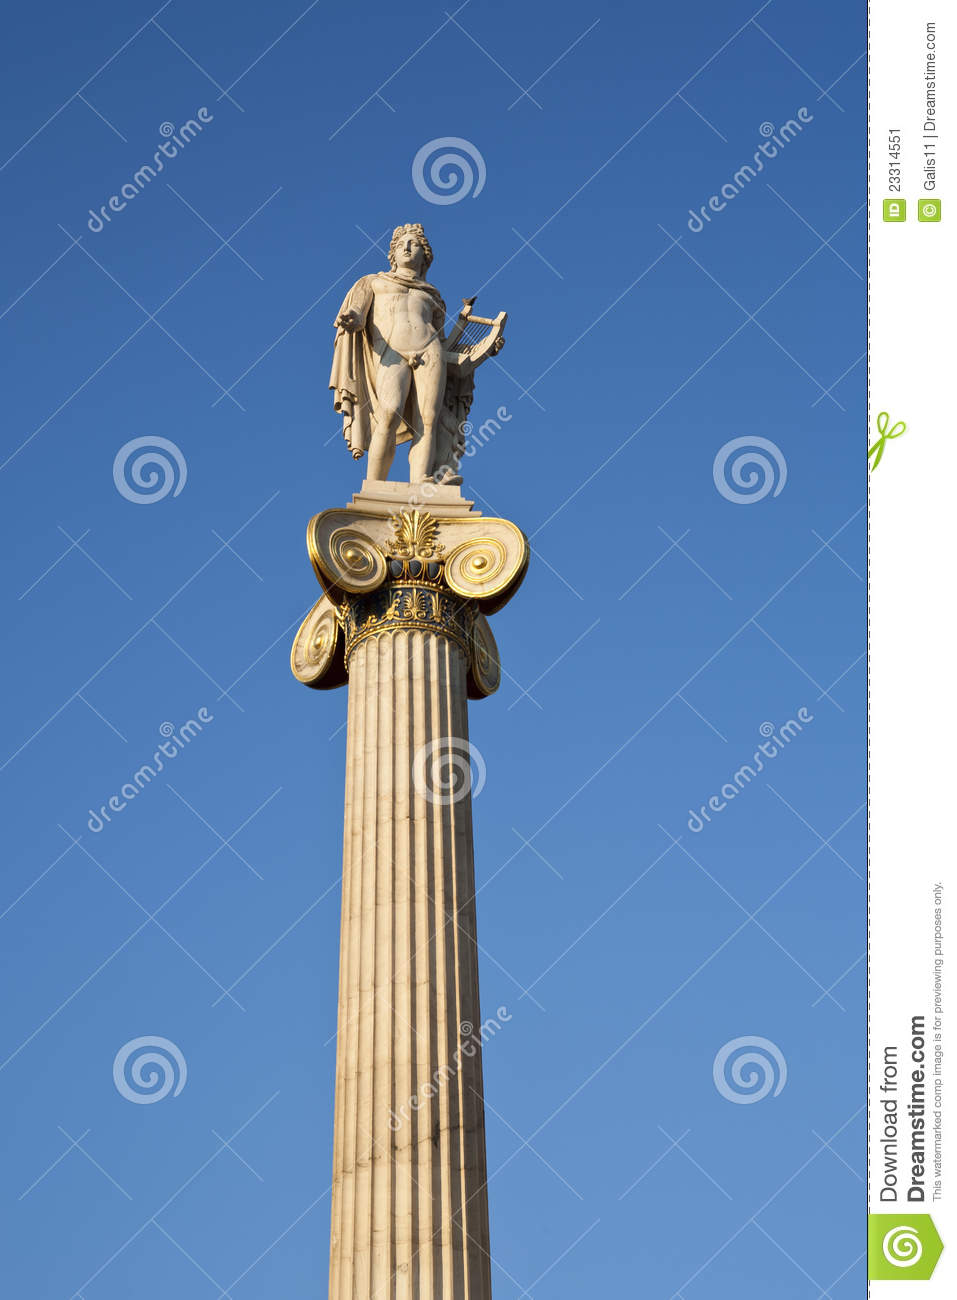 suggestions online images of apollo greek god symbol lyre